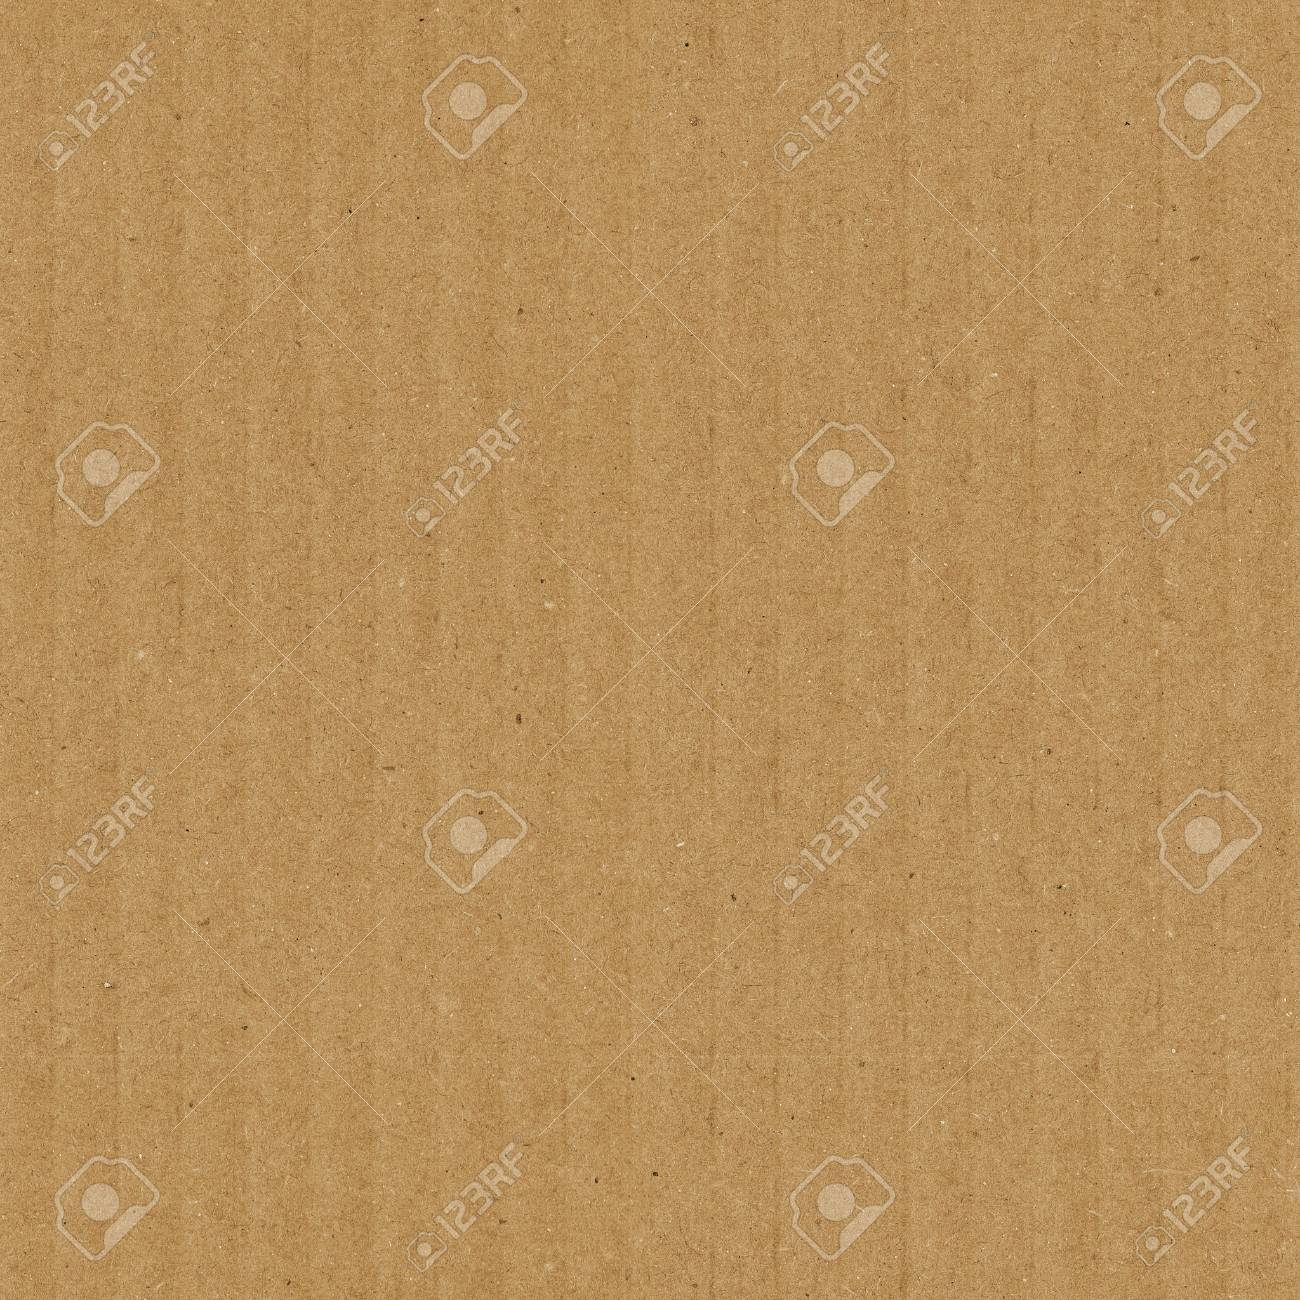 Cardboard texture seamless pattern. Brown corrugated card with vertical strips - 66293899